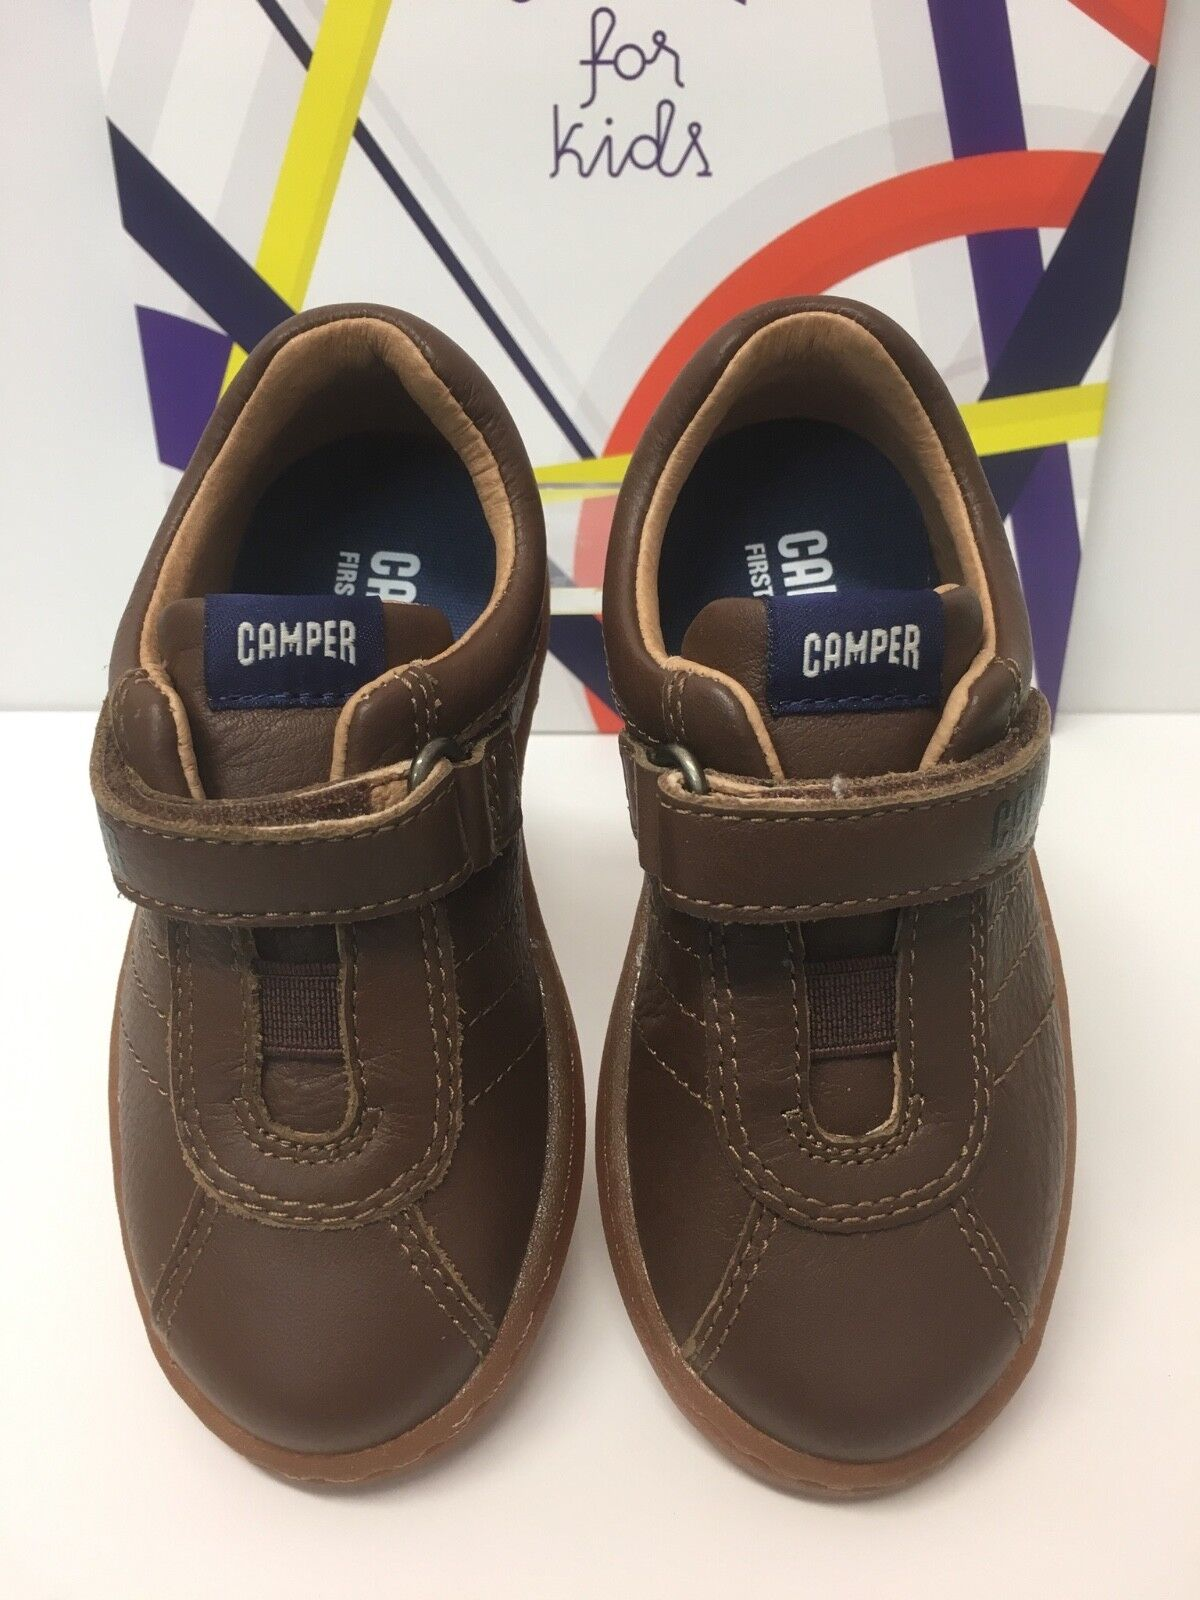 Camper UNO Infant Boys Casual Leather Shoes in Light Brown K800197-002